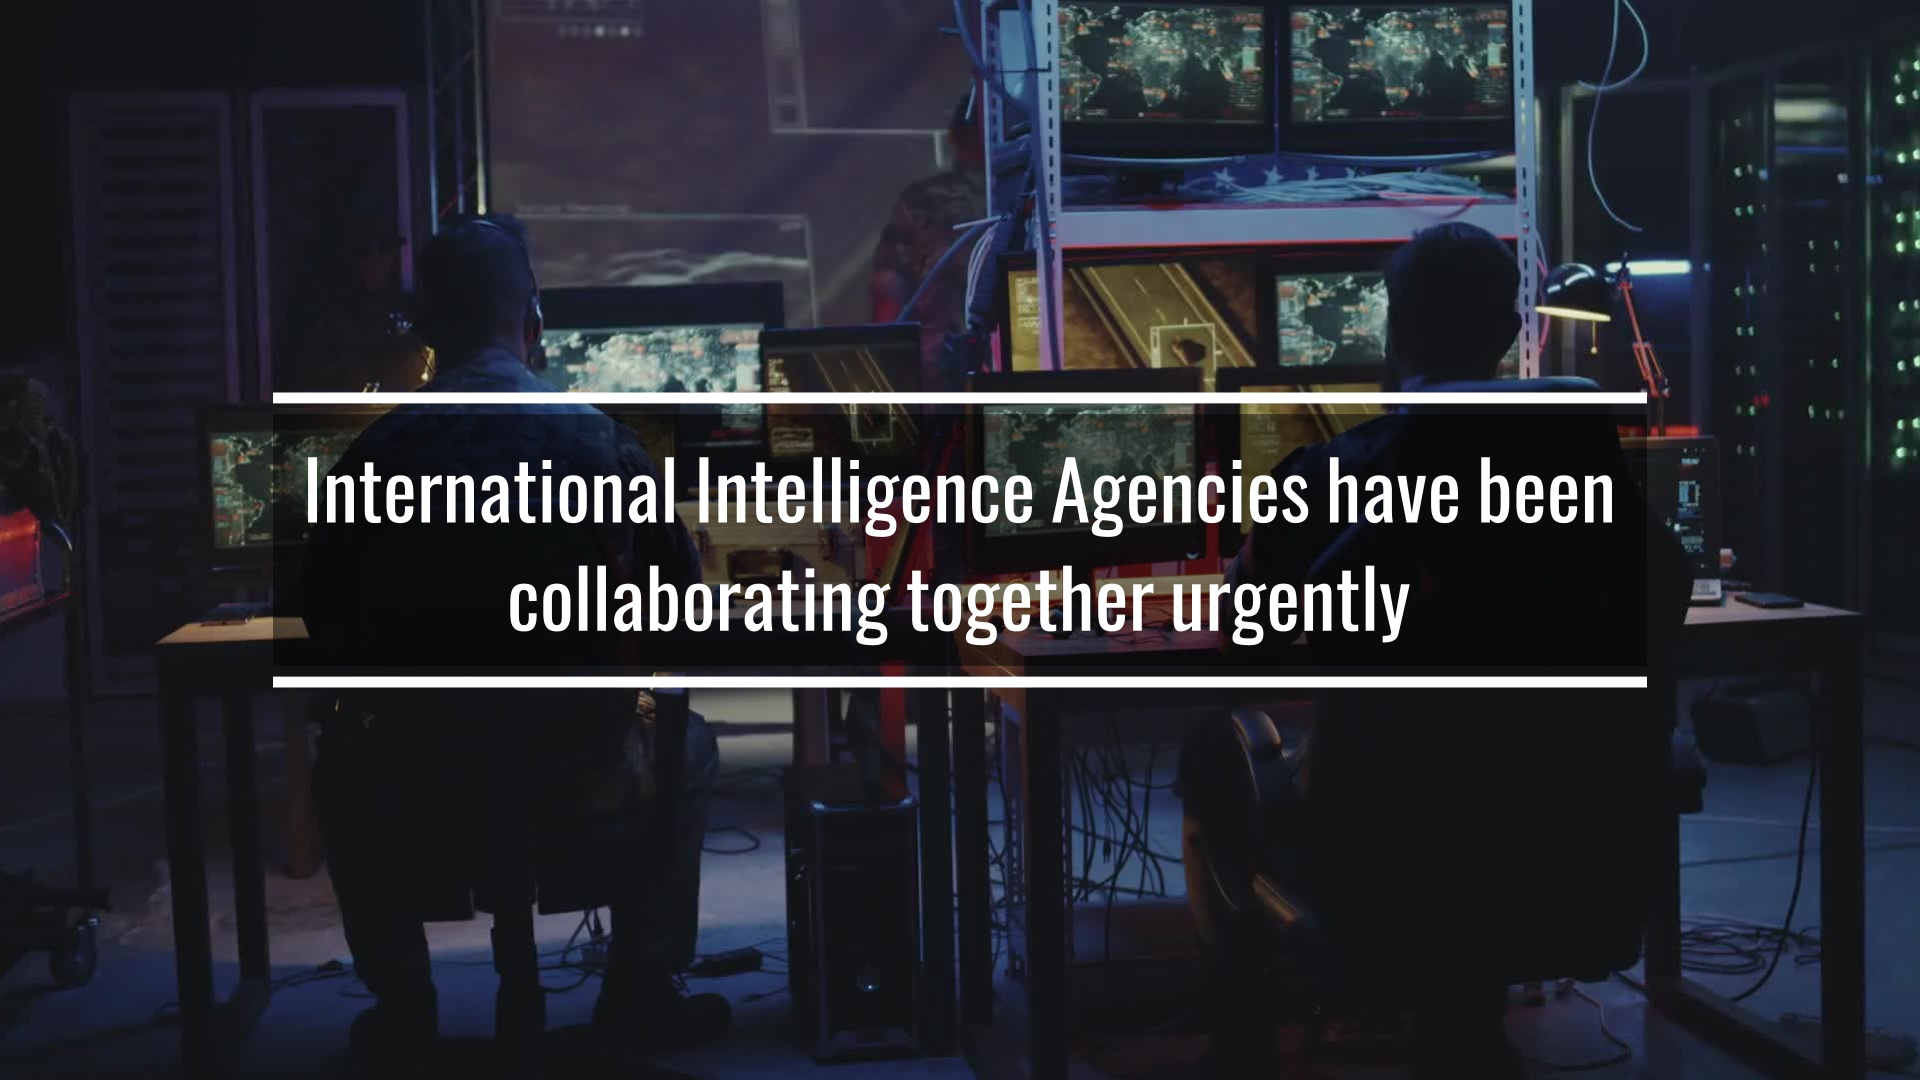 International Intelligence Agencies have been collaborating urgently together. - Copy